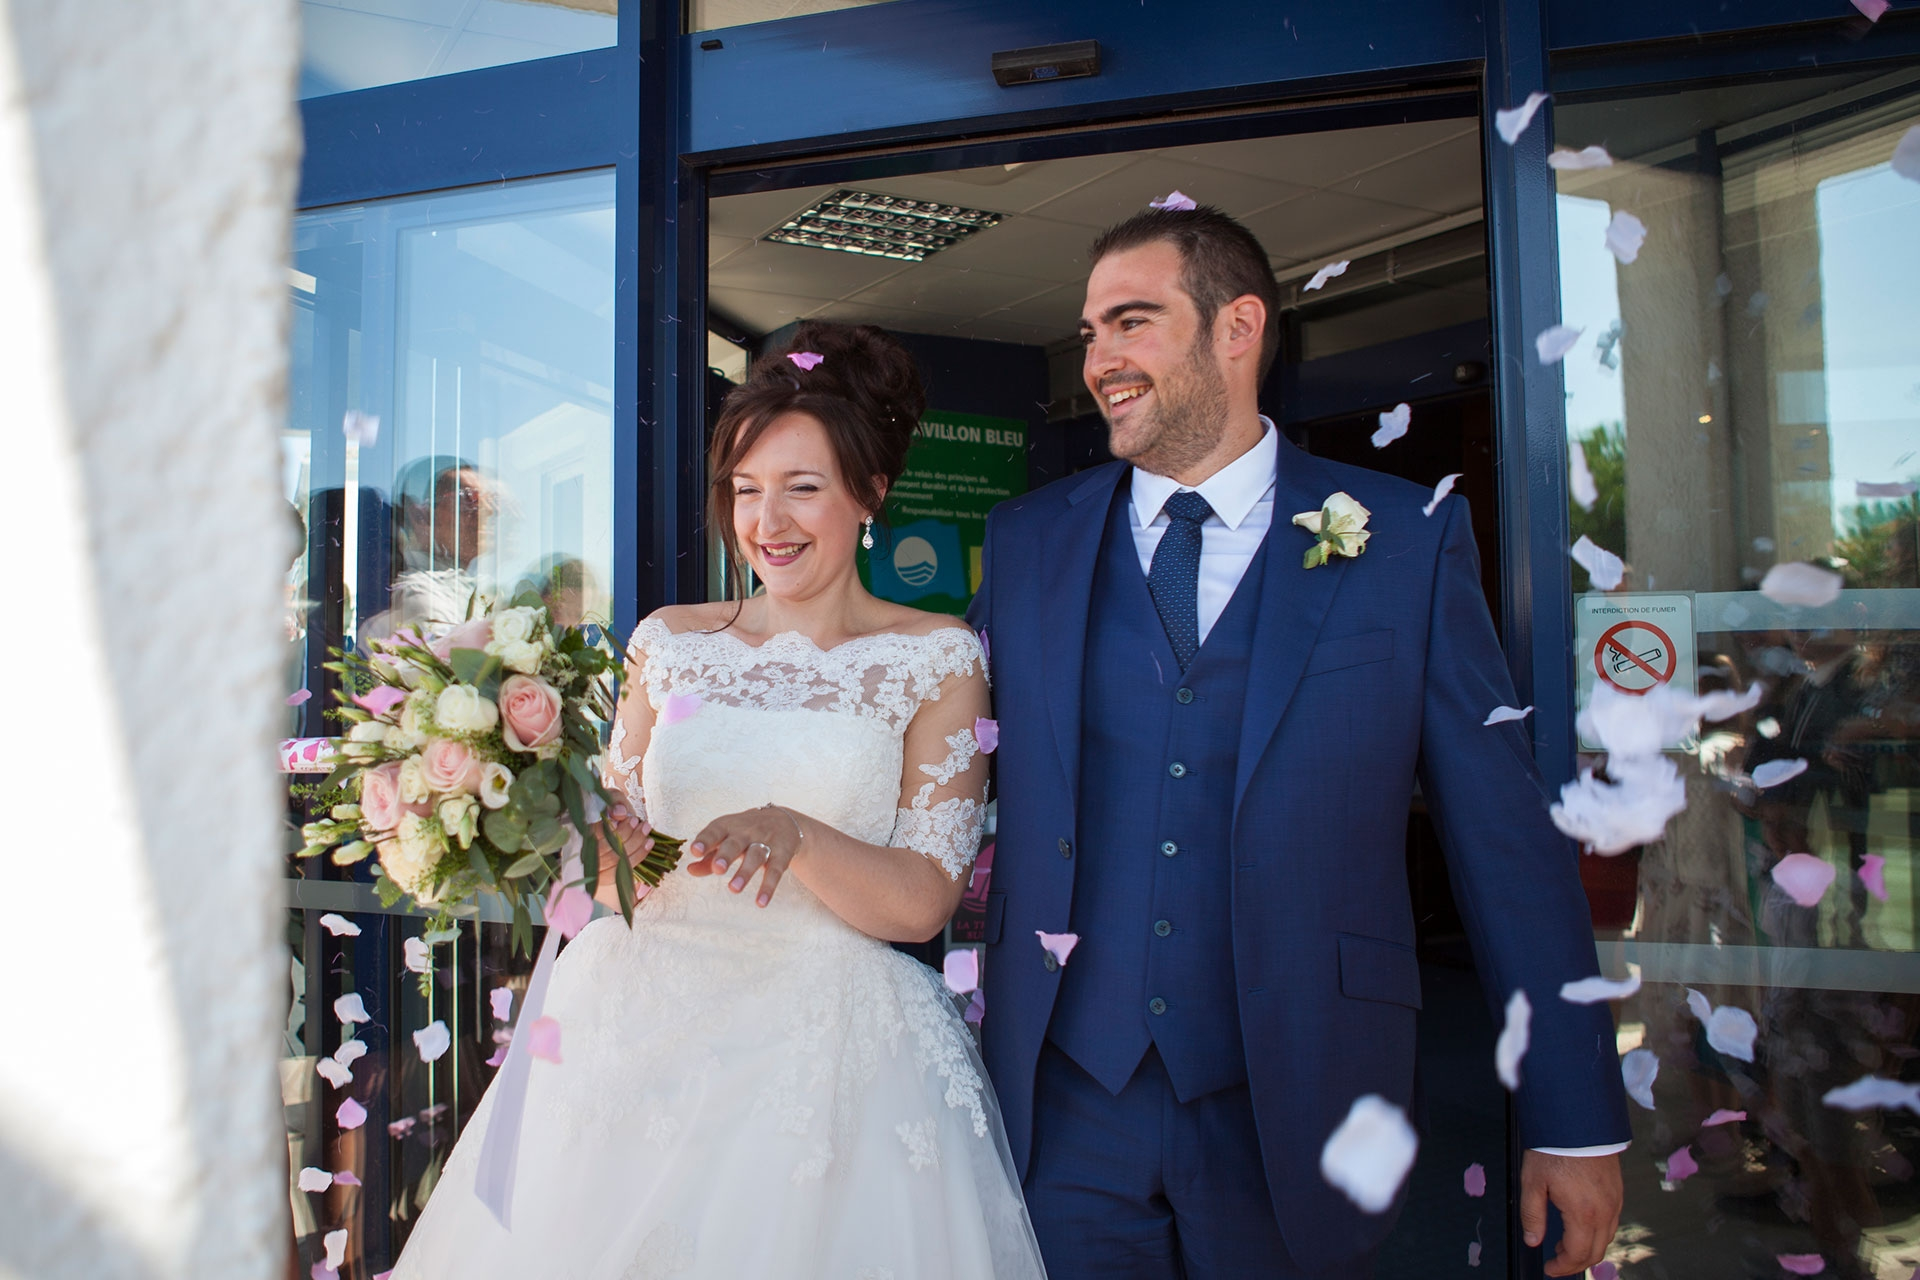 particuliers-evenements-mariage-oui-tiphaine&rudy-29